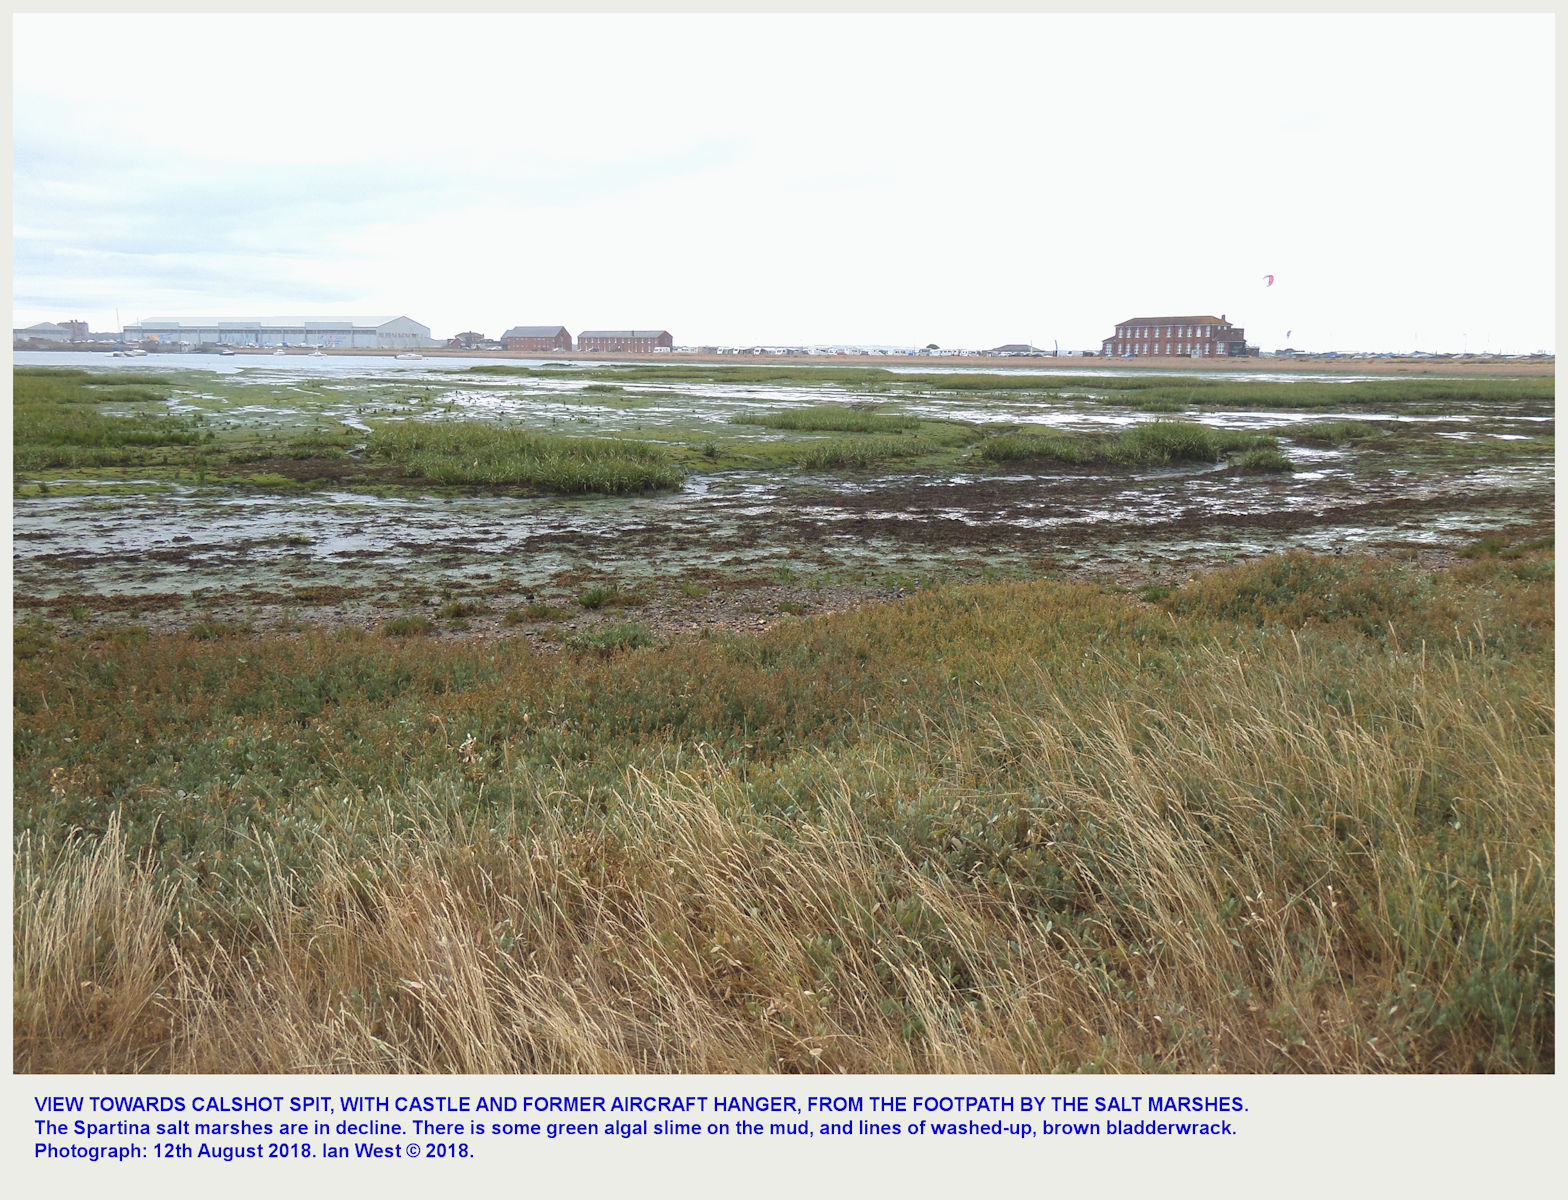 A view of the end of Calshot Spit with the castle, far left, and the large, former, hanger, as seen from the footpath at the edge of the marshes on the Southampton Water side, 12th August 2018